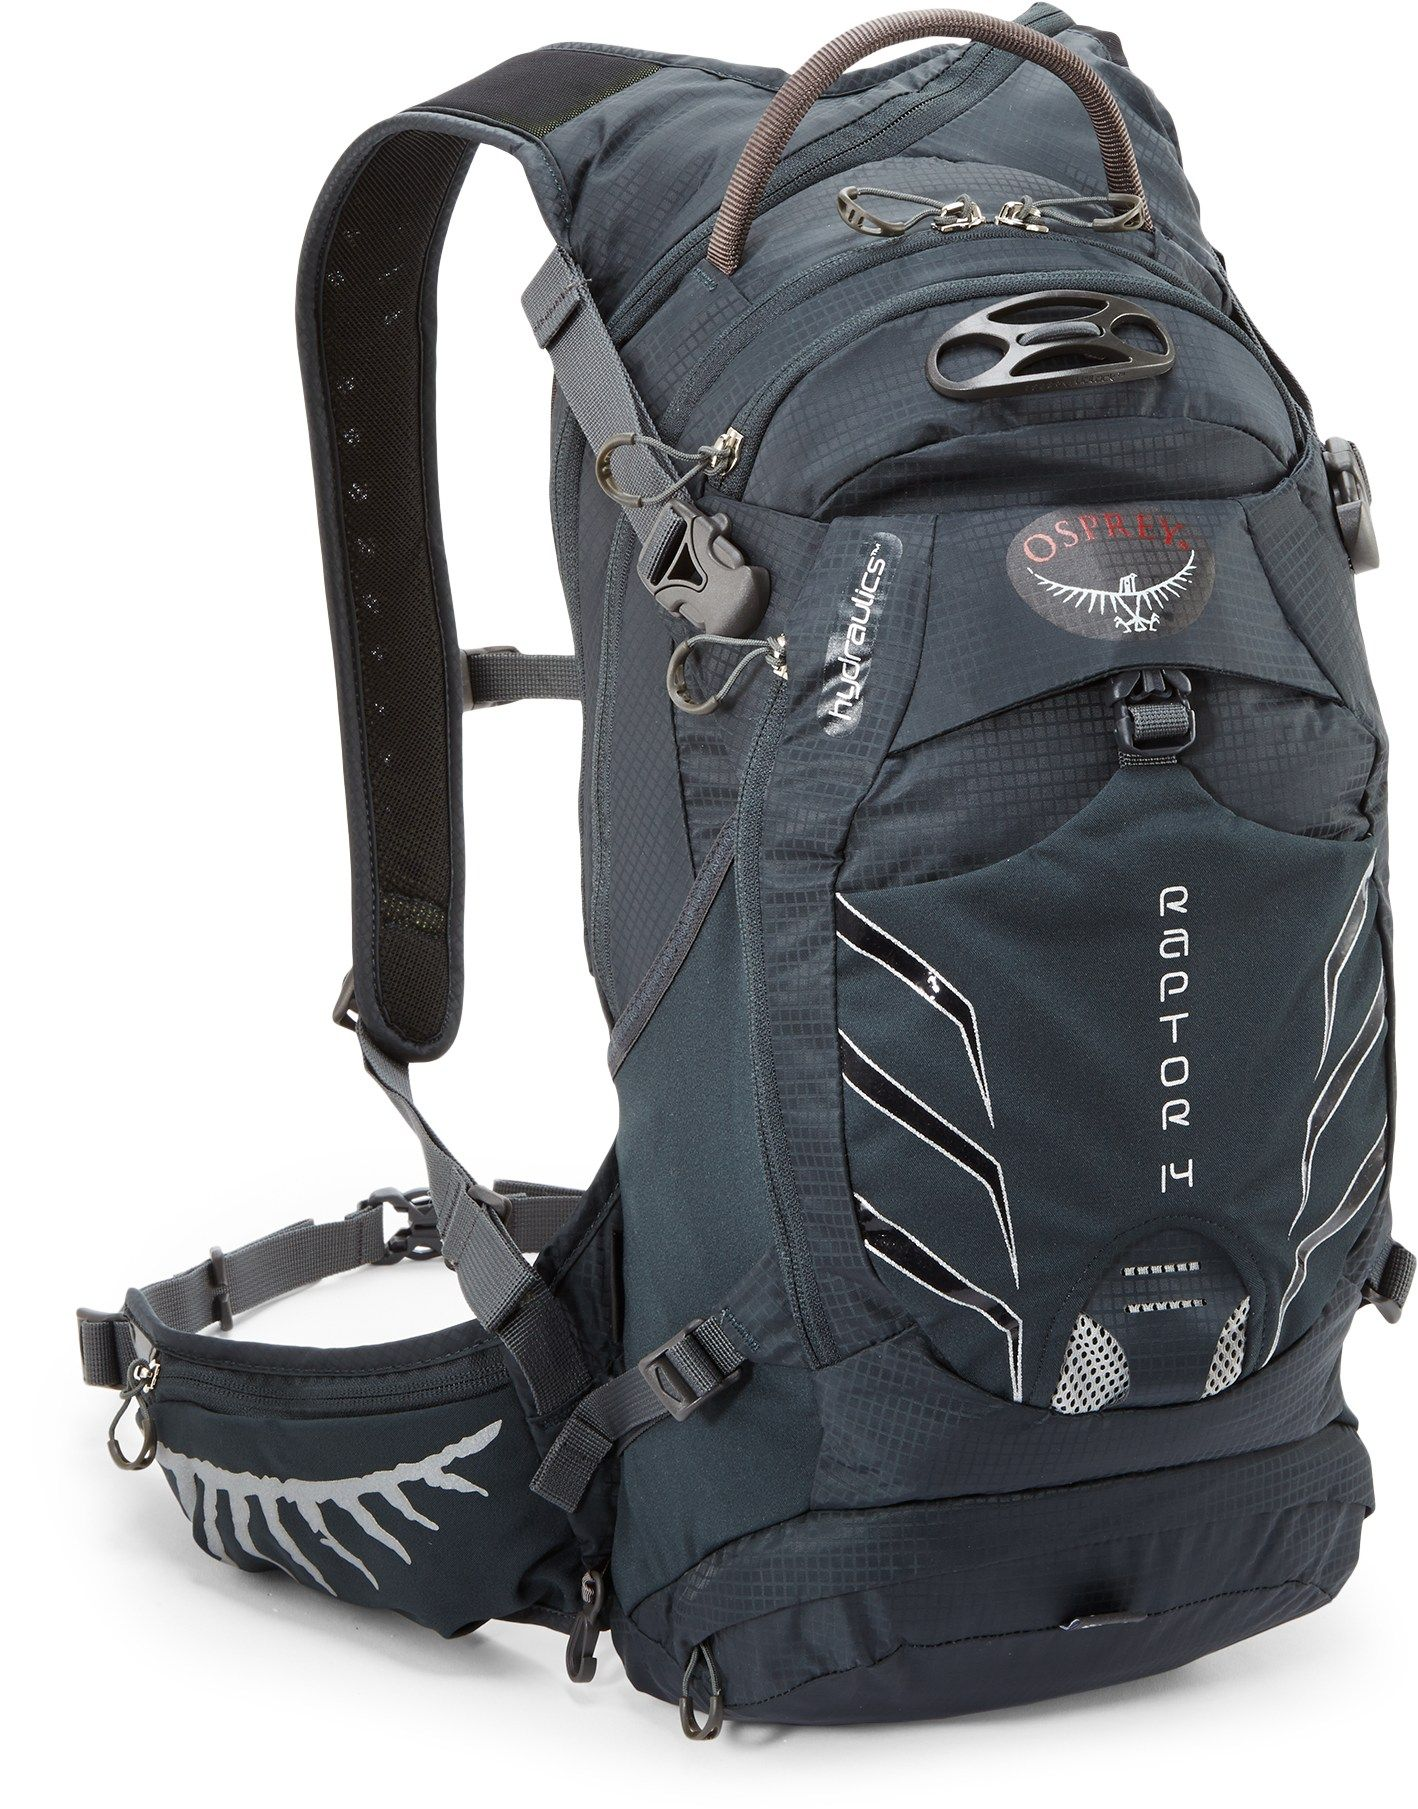 1bf96e2d079 Osprey Raptor 14 Hydration Pack - 100 fl. oz. - 2015 | REI Co-op | A ...